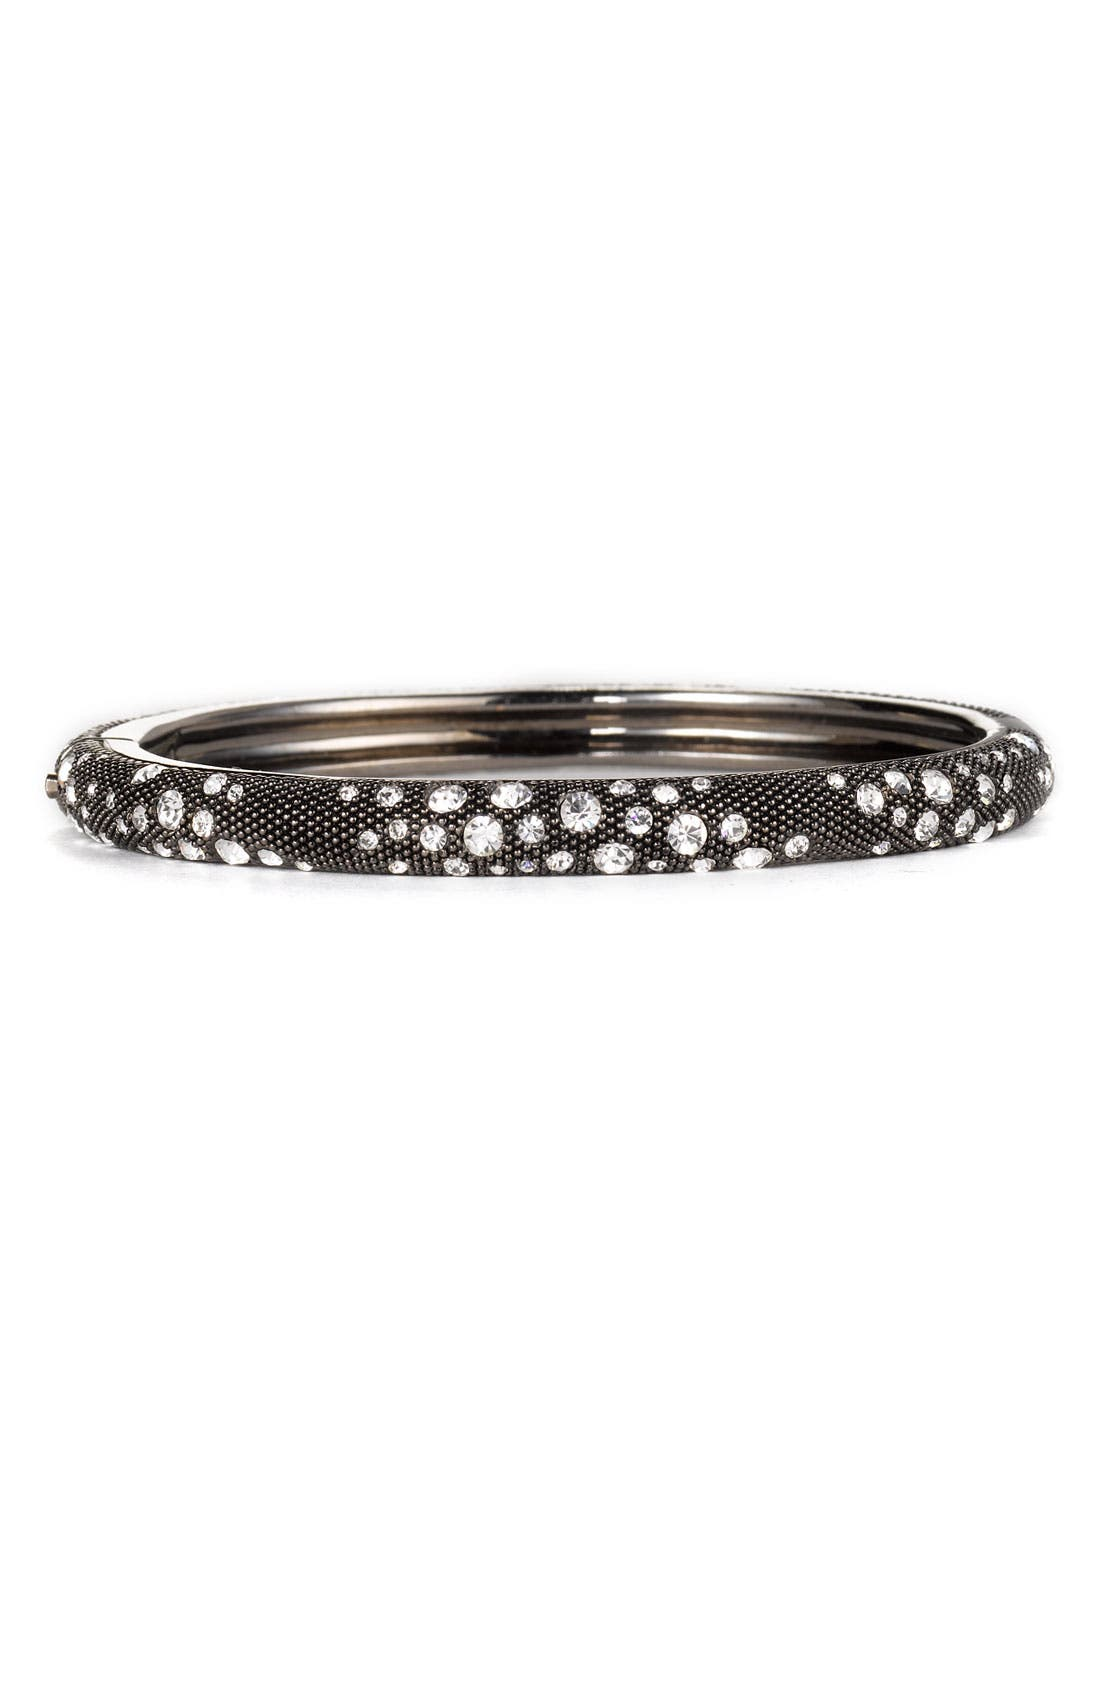 Main Image - Nadri Black & White Crystal Hinged Bangle (Nordstrom Exclusive)